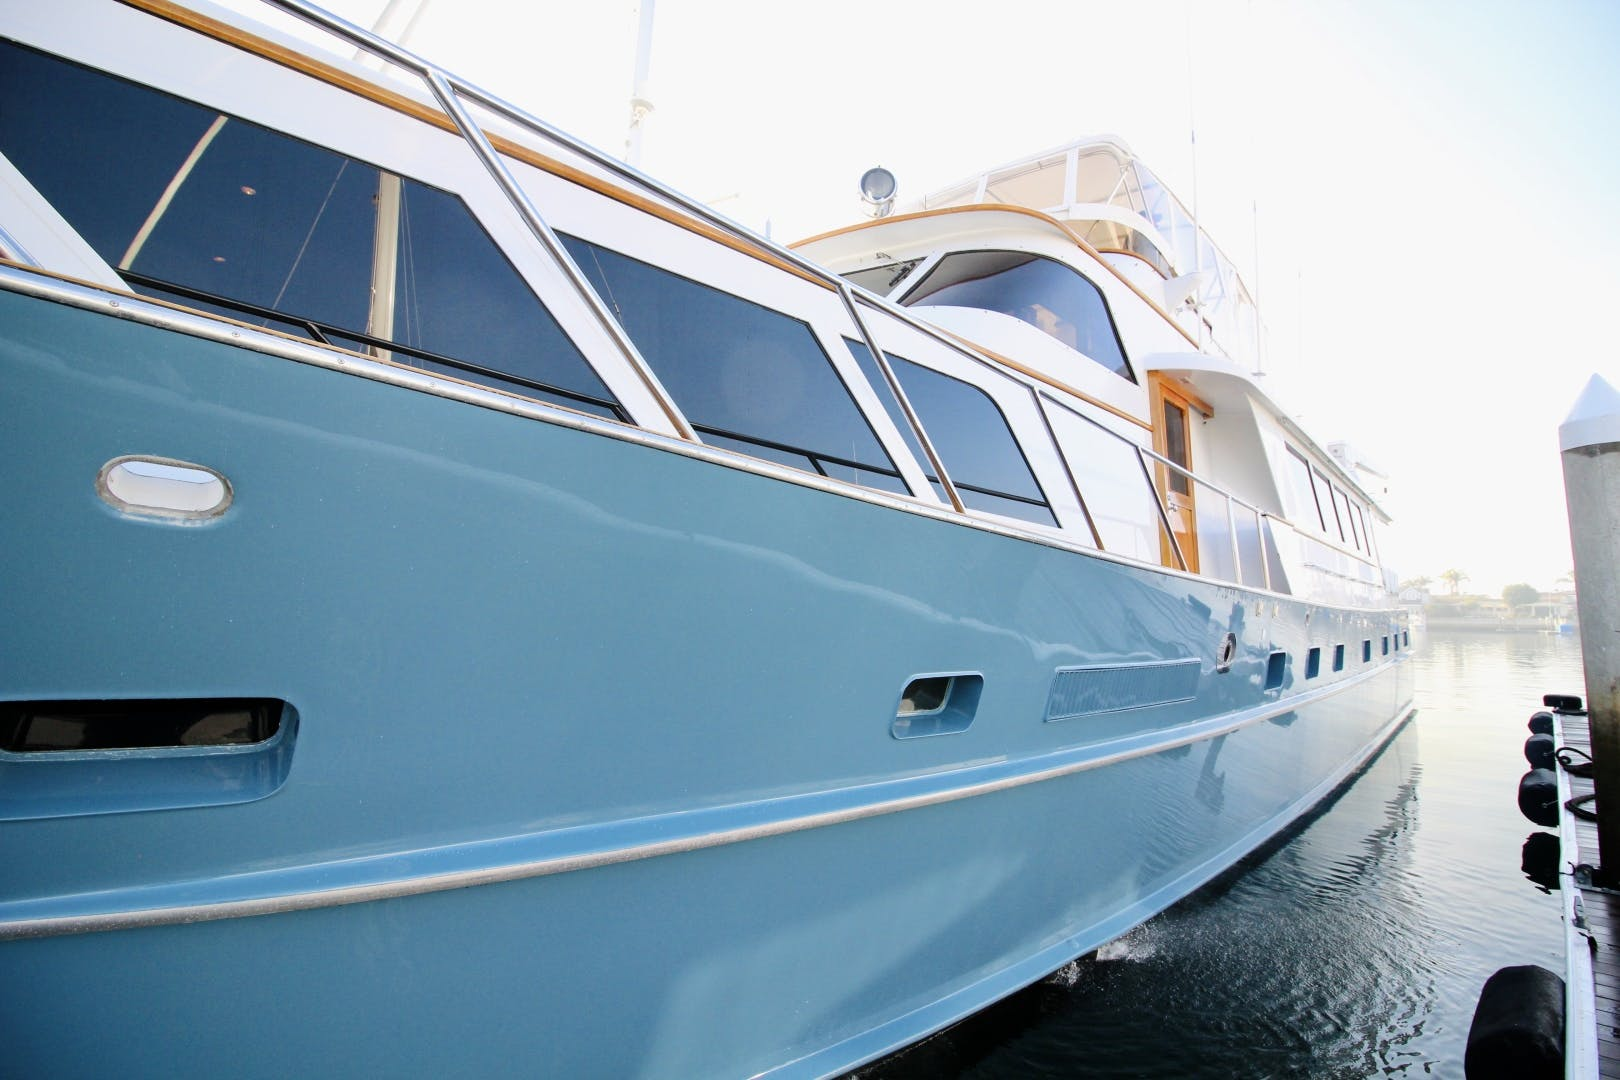 1982 Broward 98' 98 Motor Yacht Reflections  | Picture 4 of 63